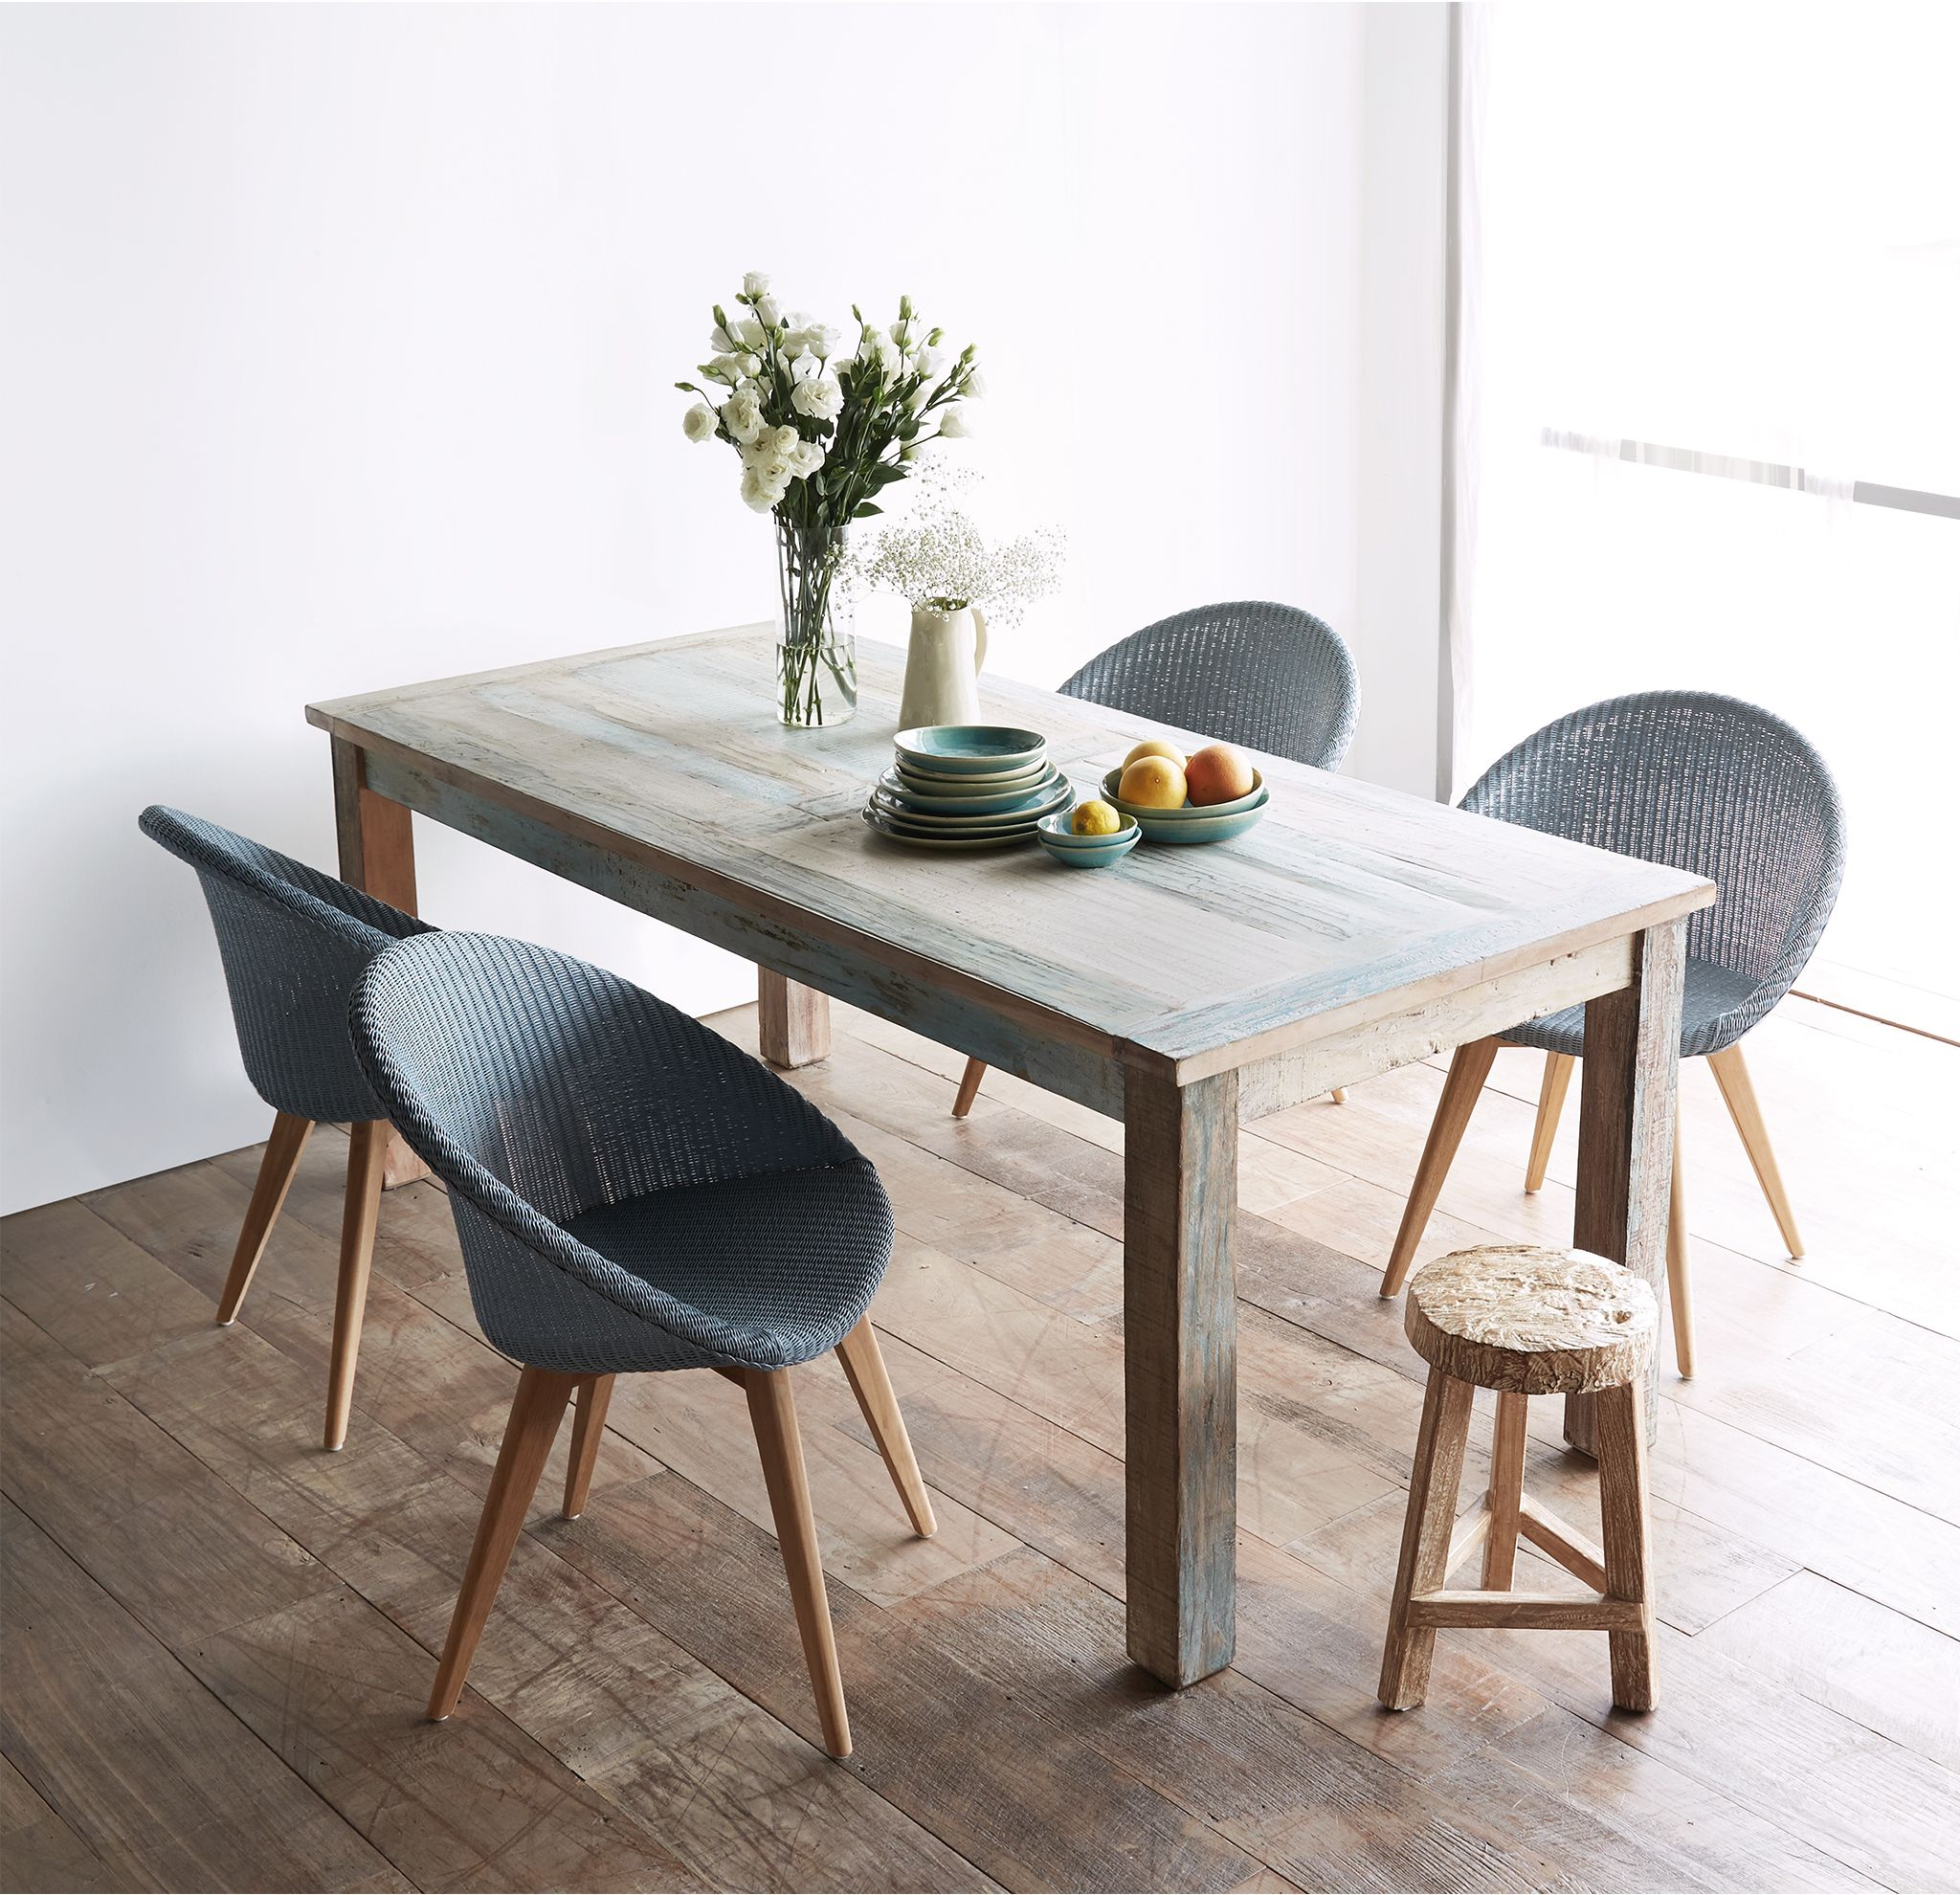 Nomad India Recycled Dining Table Made From Reclaimed Teak